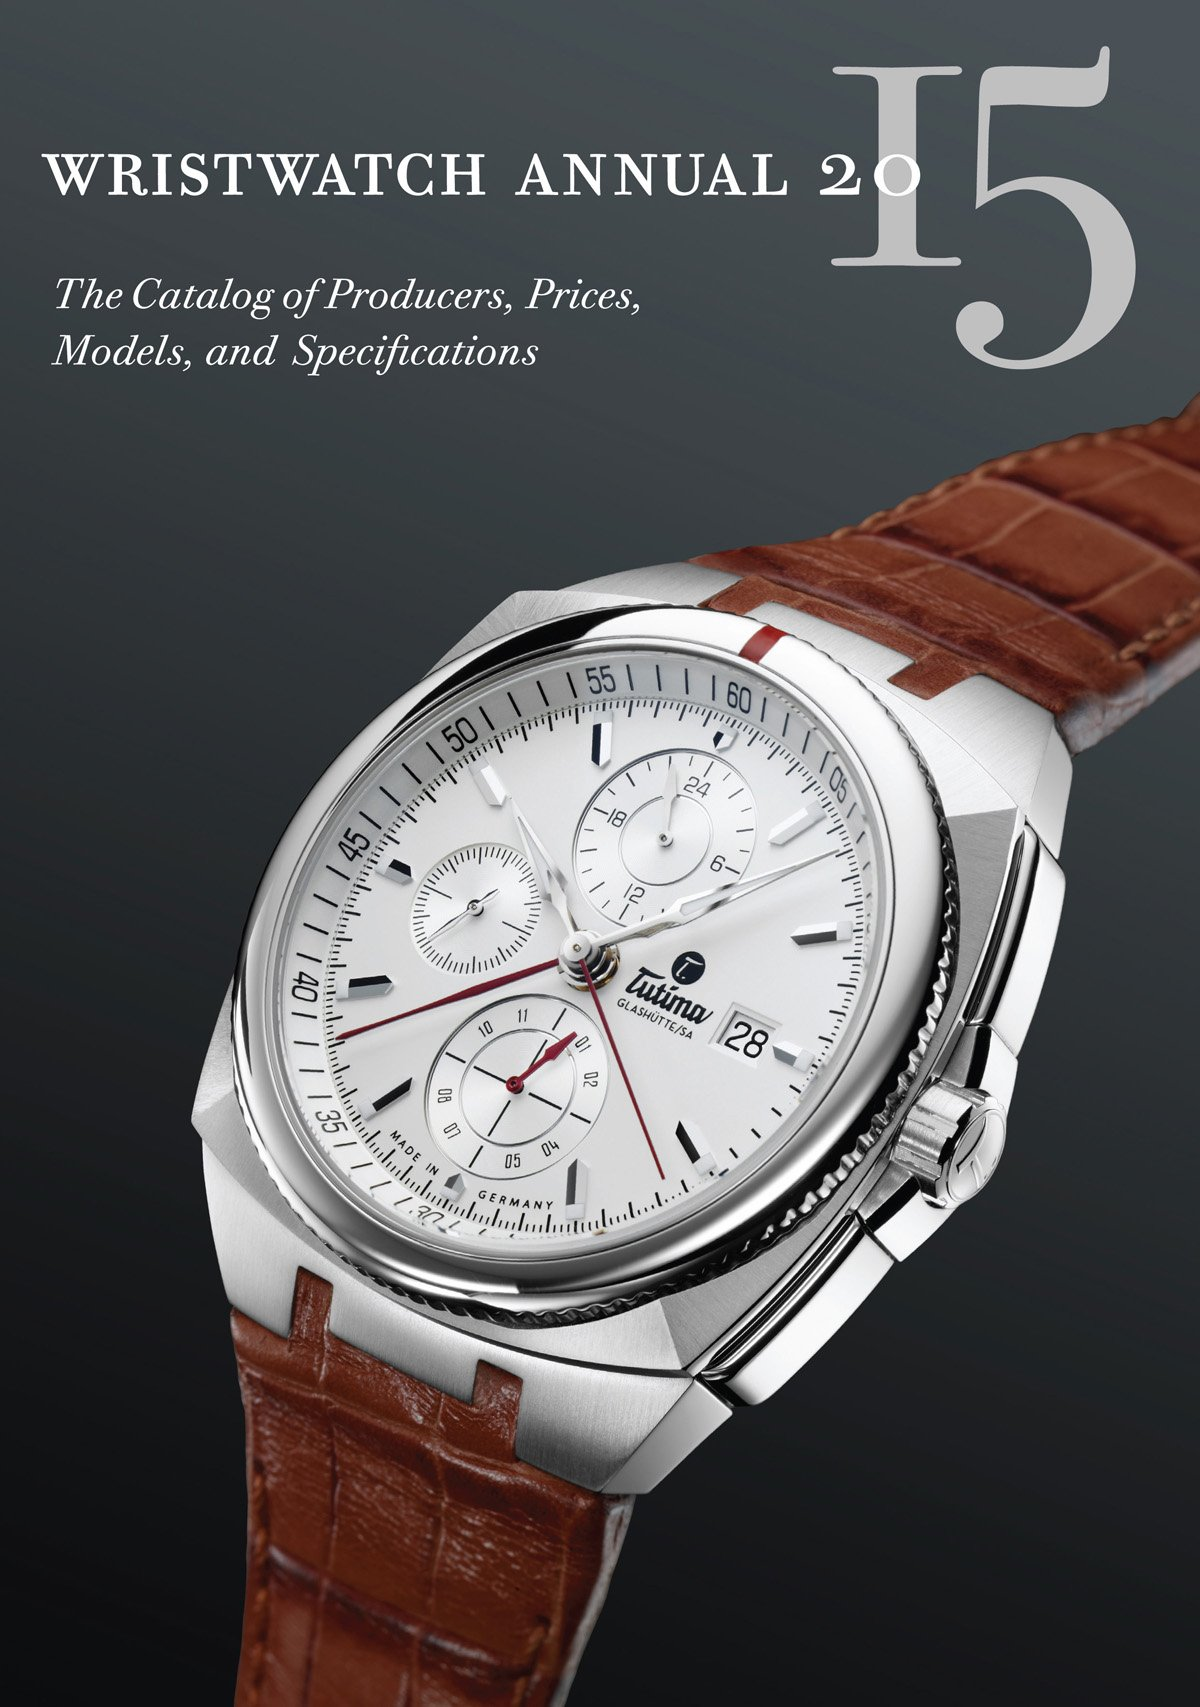 Wristwatch Annual 2015 Producers Specifications product image